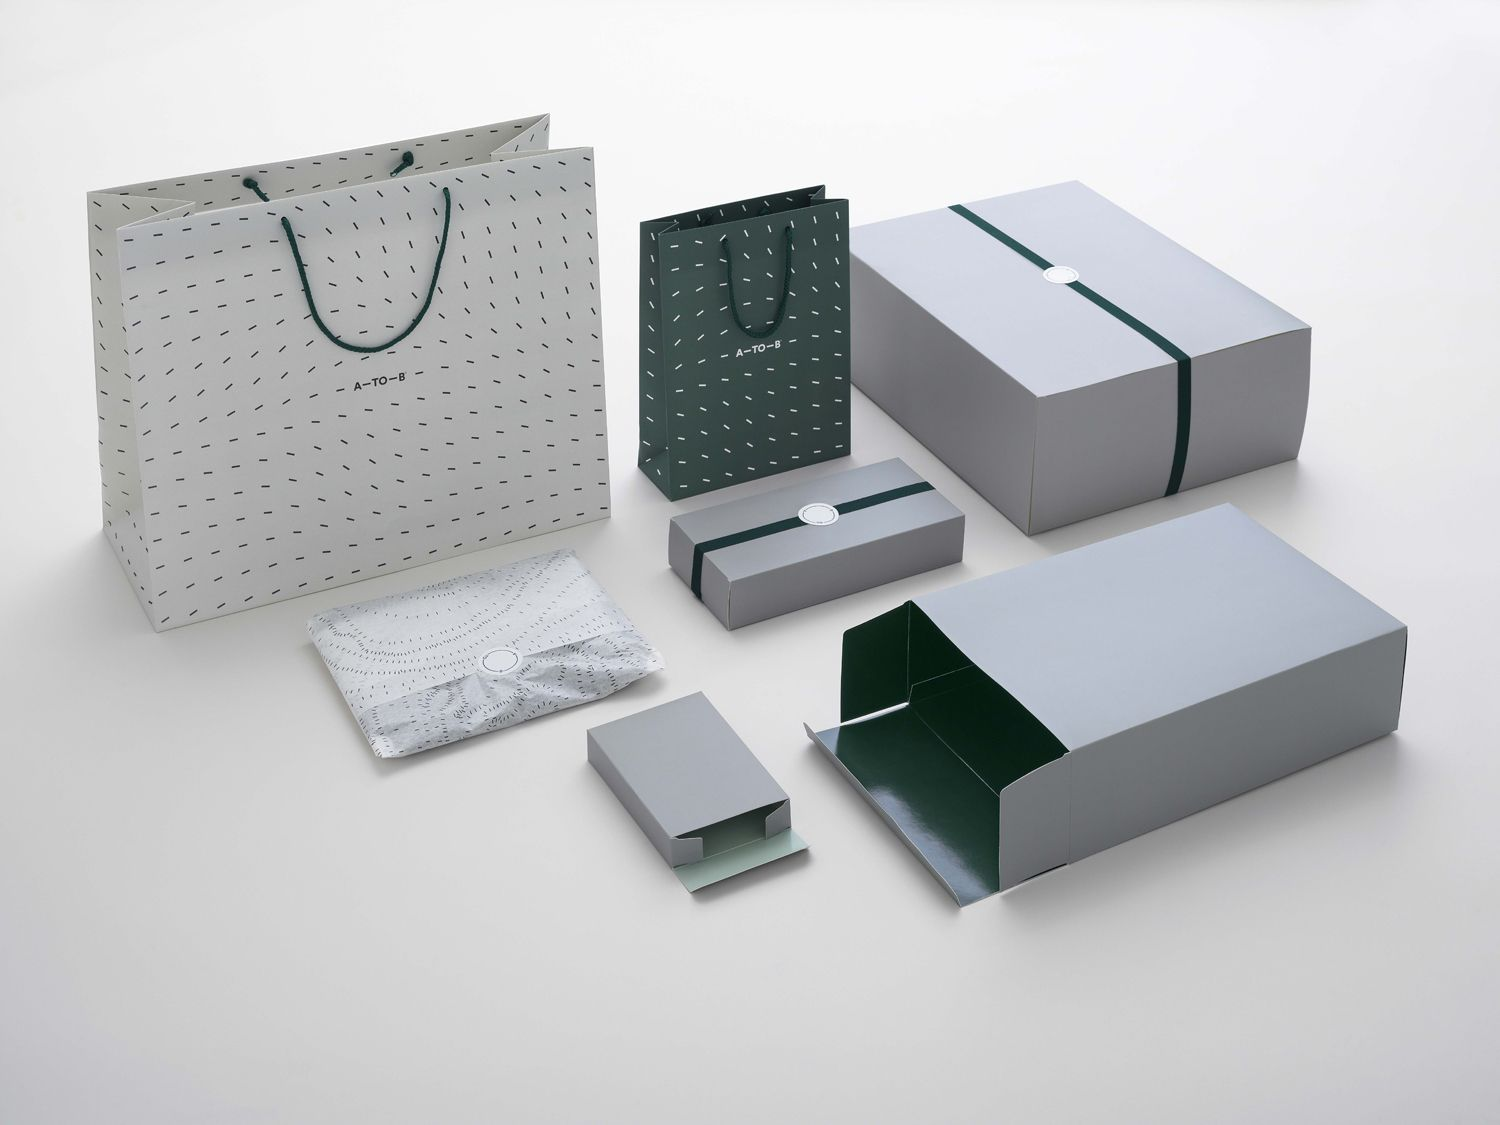 Design packaging packaging specialist packaging - Brand Identity For A To B By Stockholm Design Lab Bp O